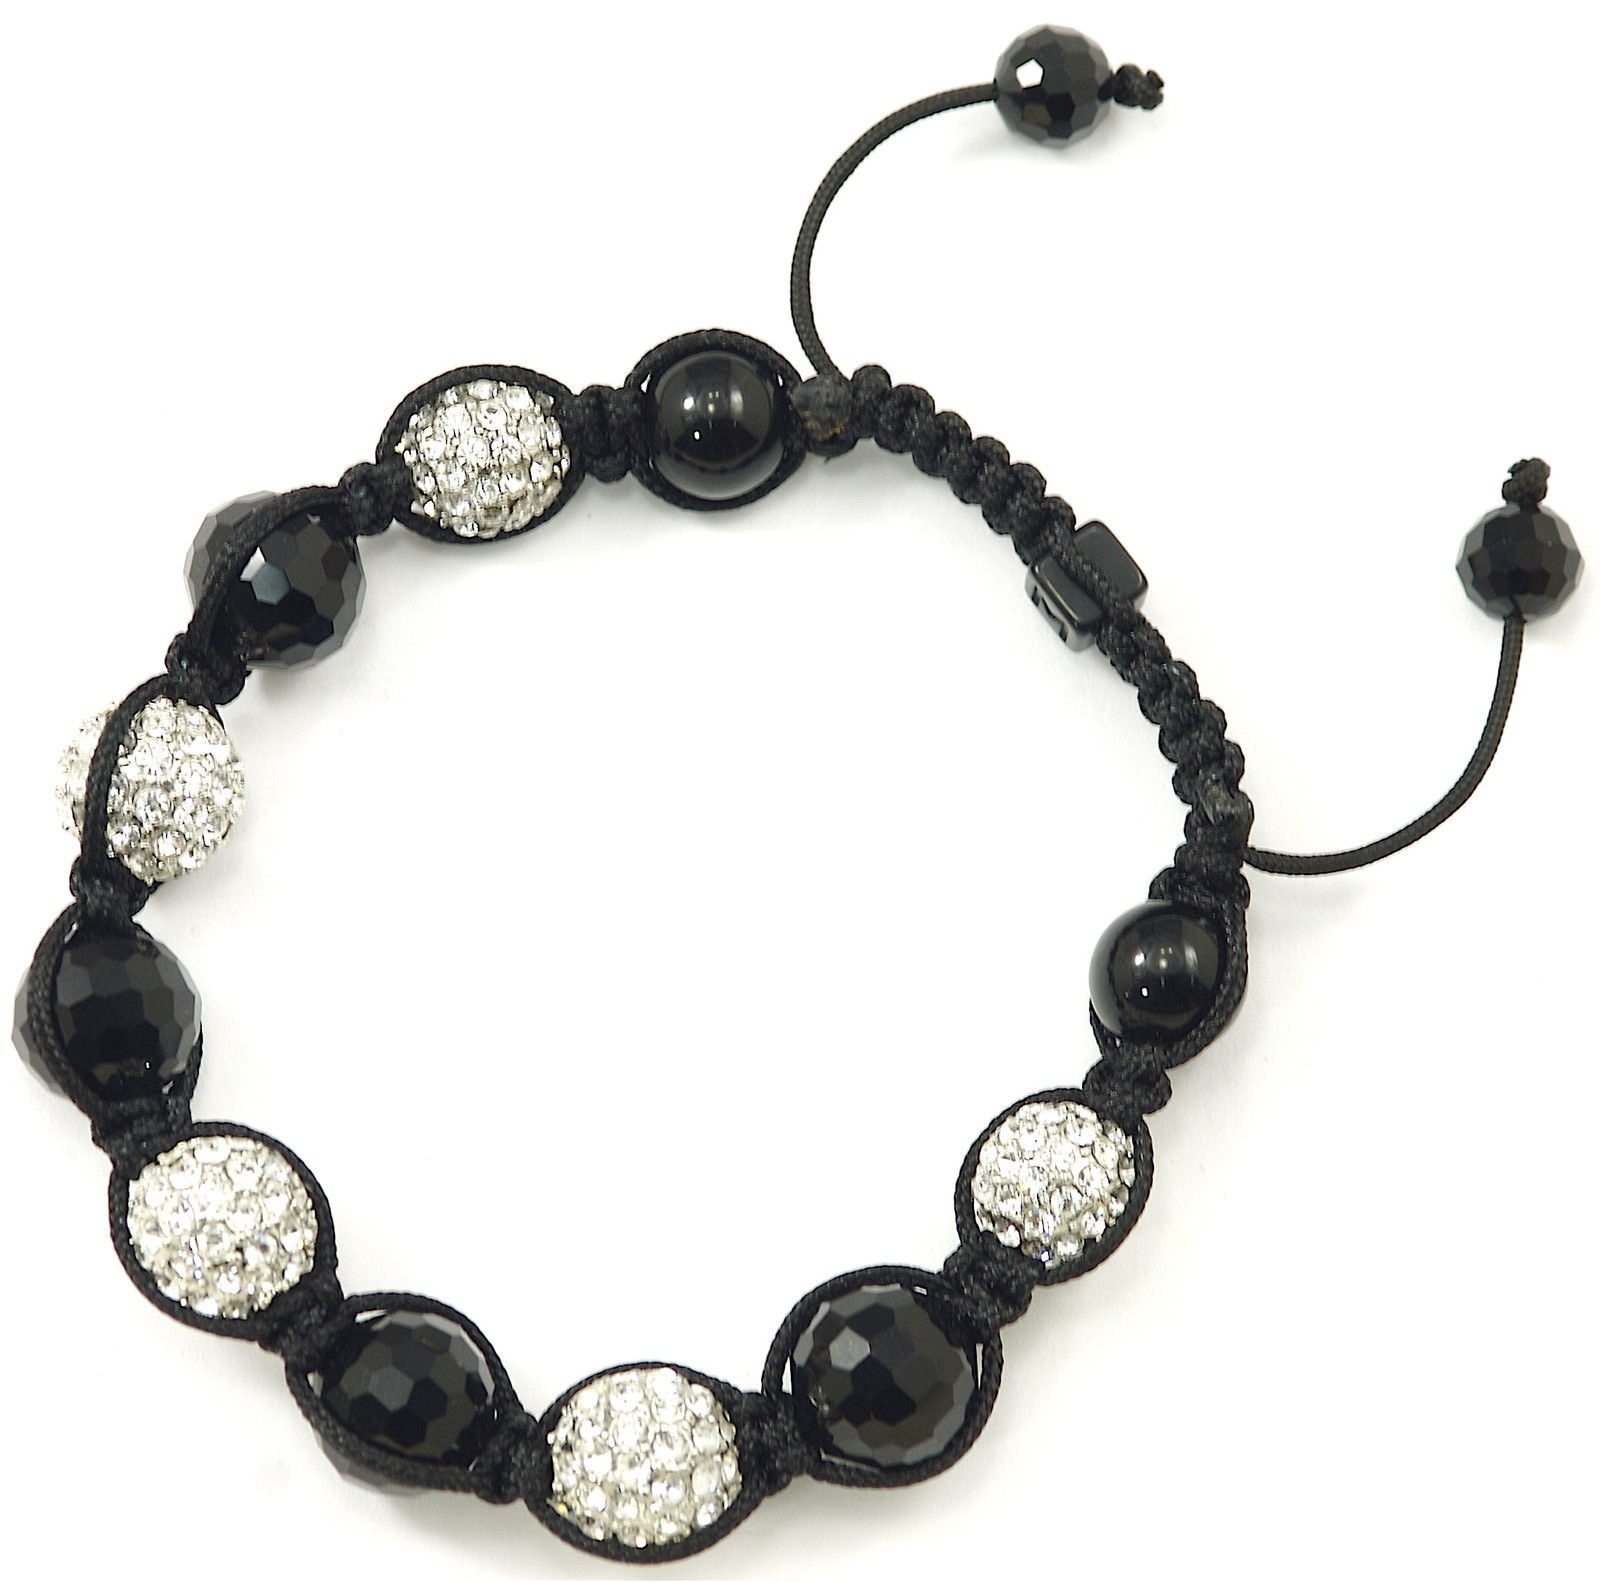 Primary image for Crystal Ball Shamballa New Buddhist Adjustable Macrame Bracelet 1277